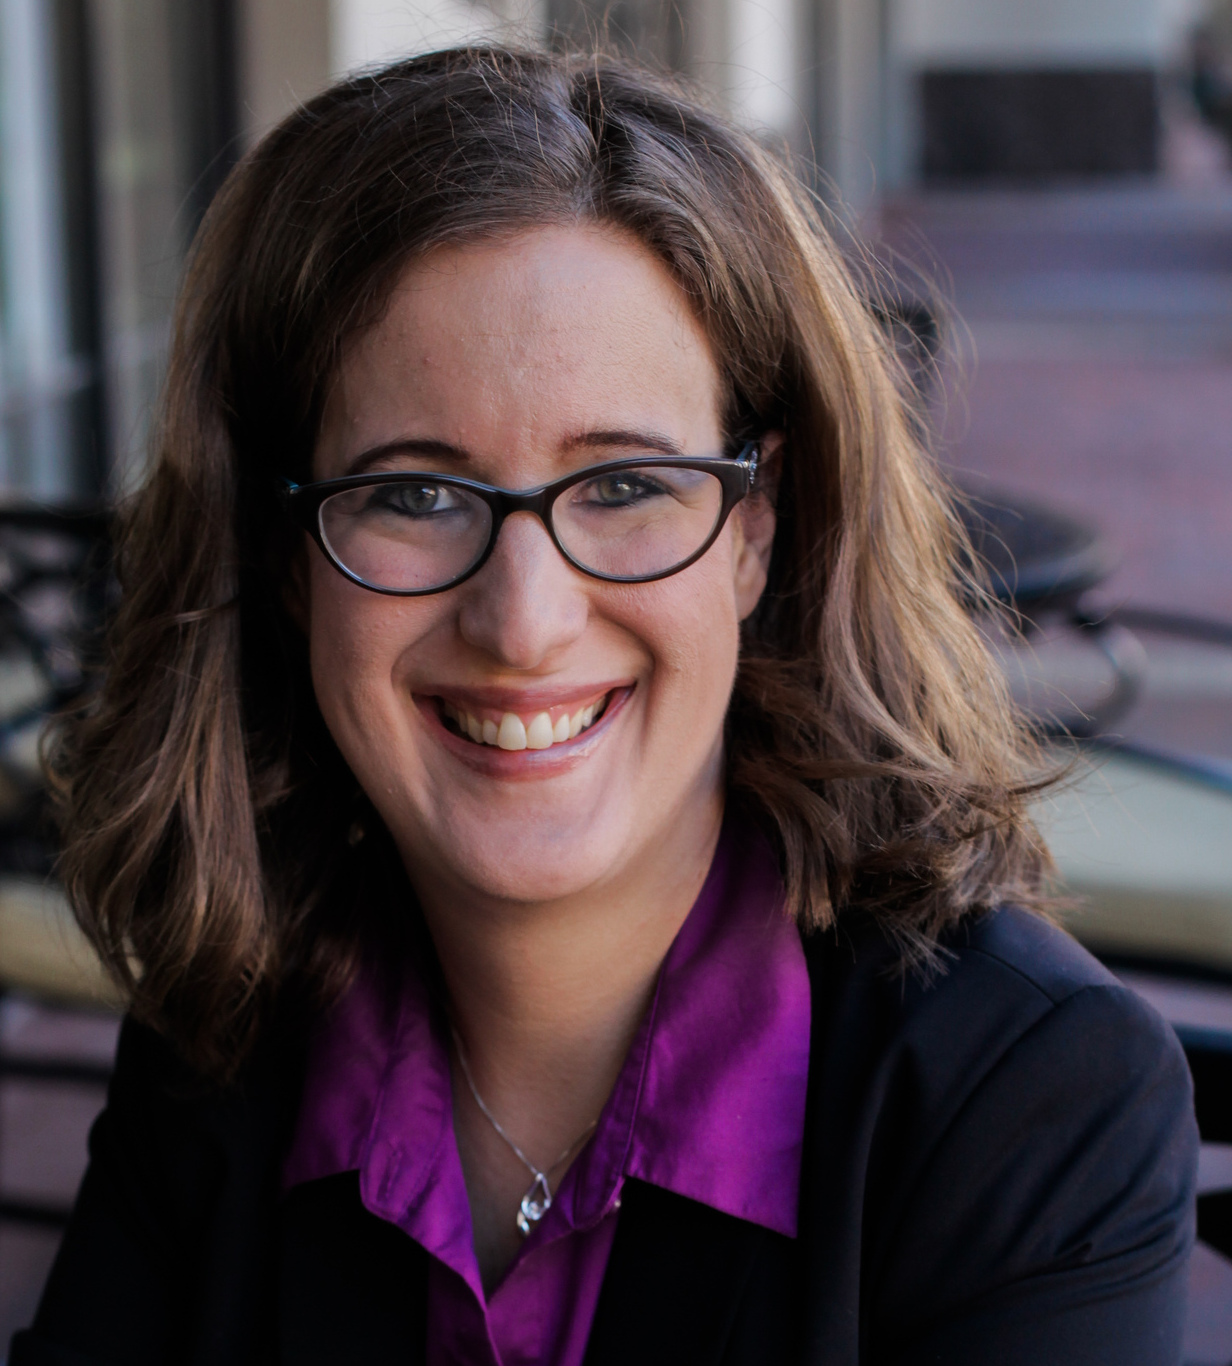 - Carissa Gay is a career and leadership coach who helps aspiring leaders clarify their vision and maximize their impact. She lives in San Antonio, Texas,and enjoys books, chocolates, and overseas adventures. You can connect with her on FB at Courageous Leaders.